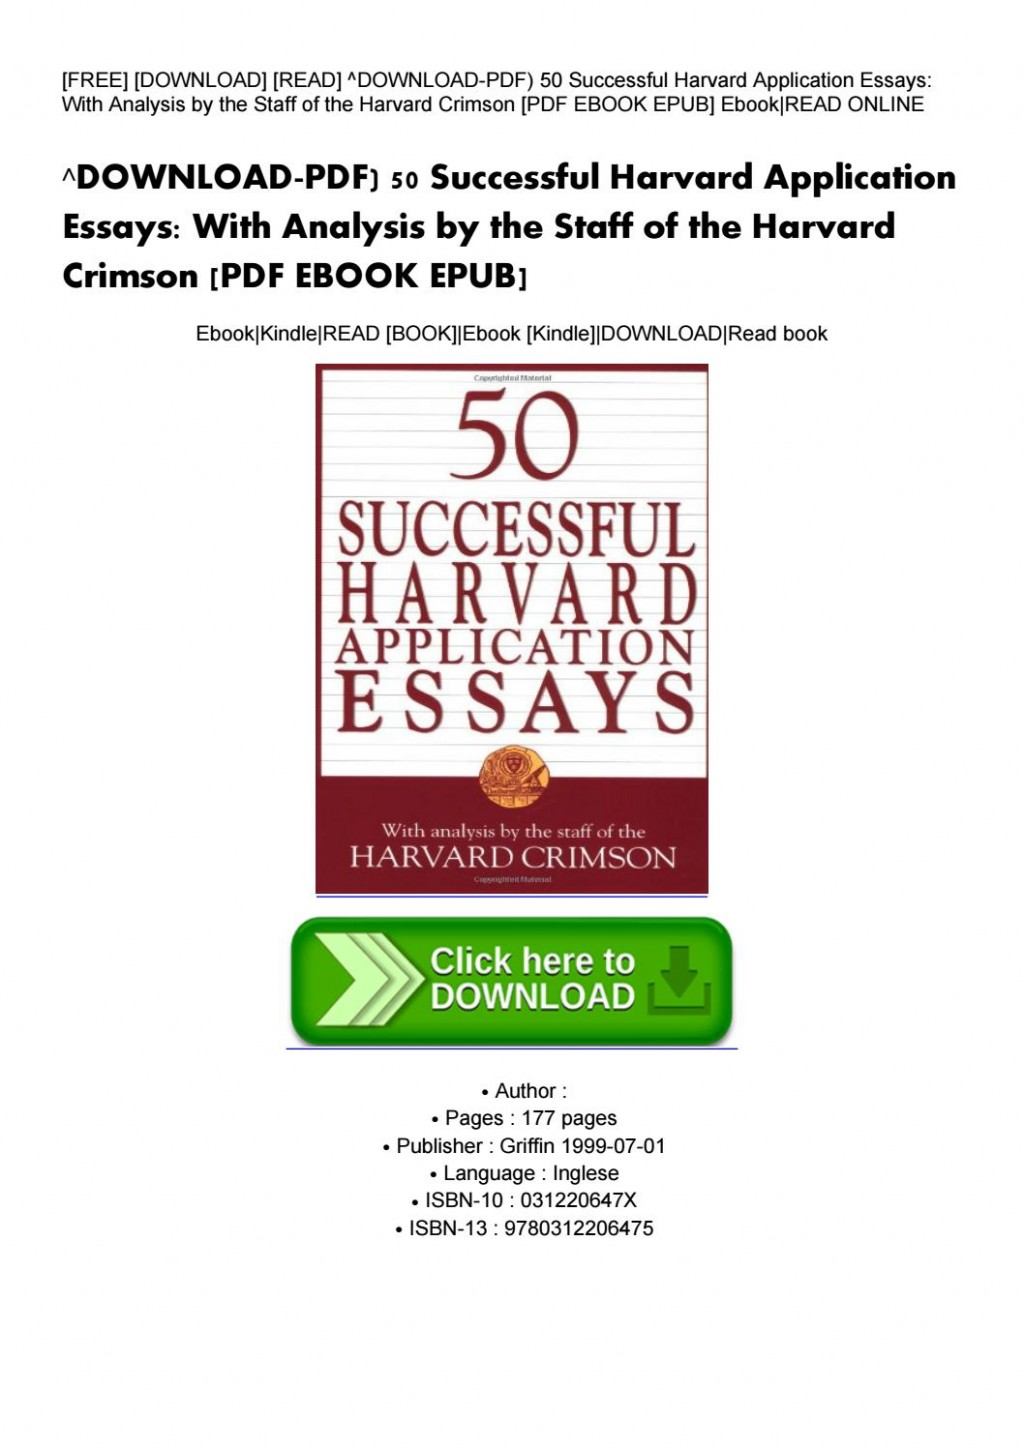 003 Essay Example Successful Harvard Application Essays Pdf Page 1 Impressive 50 Free 4th Edition Download Large